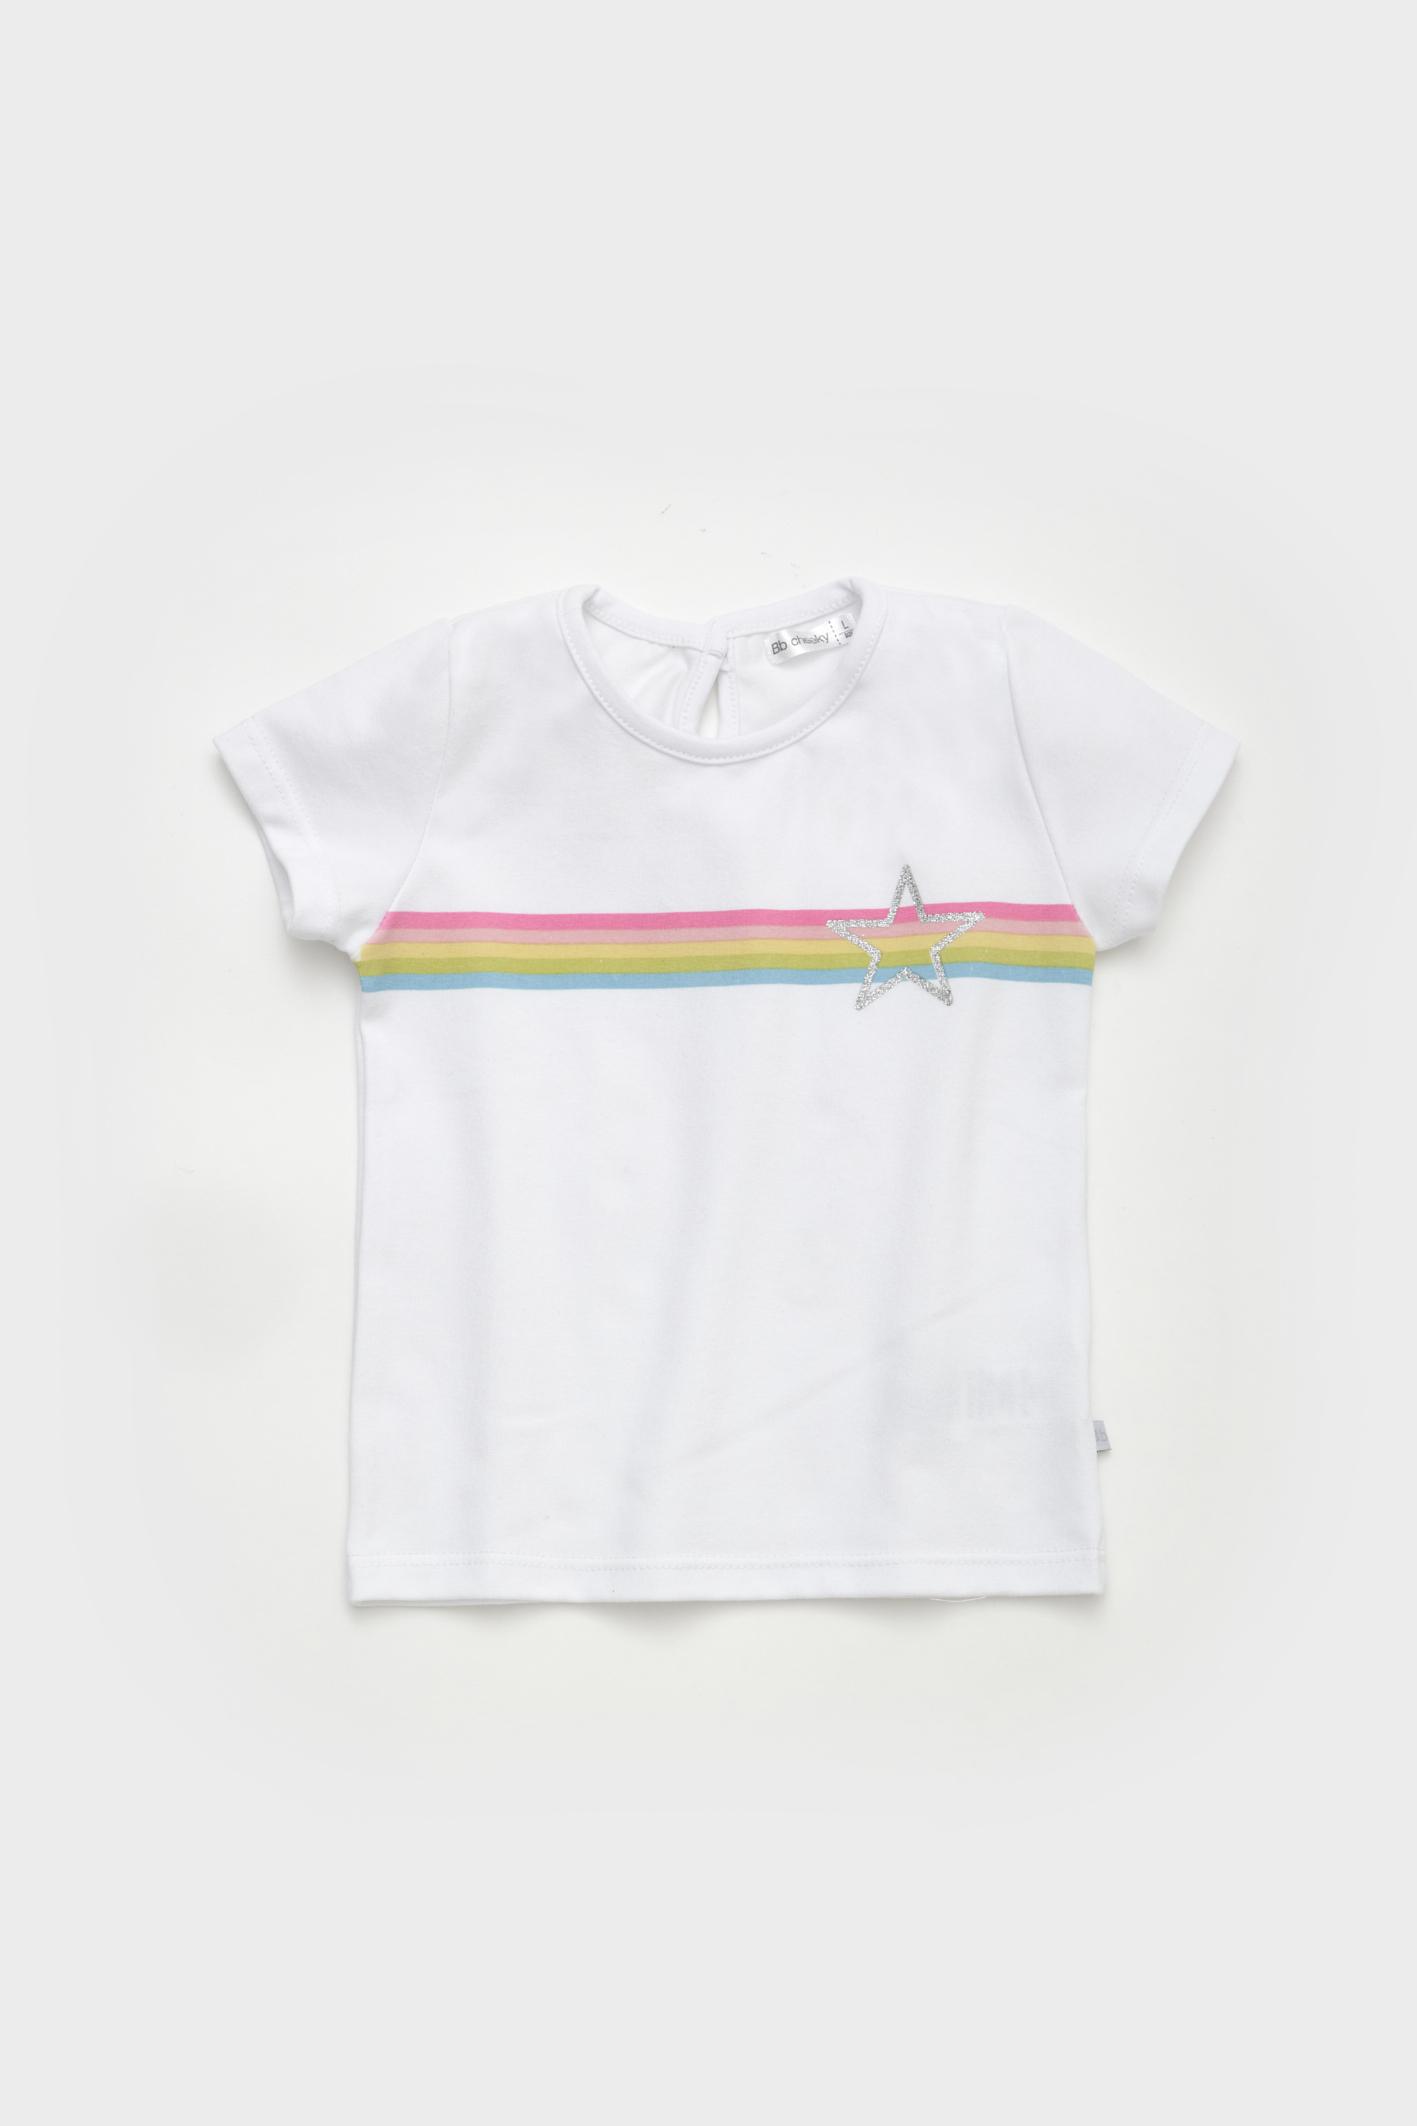 cheeky_remera-colors-m-l_15-27-2020__picture-72447